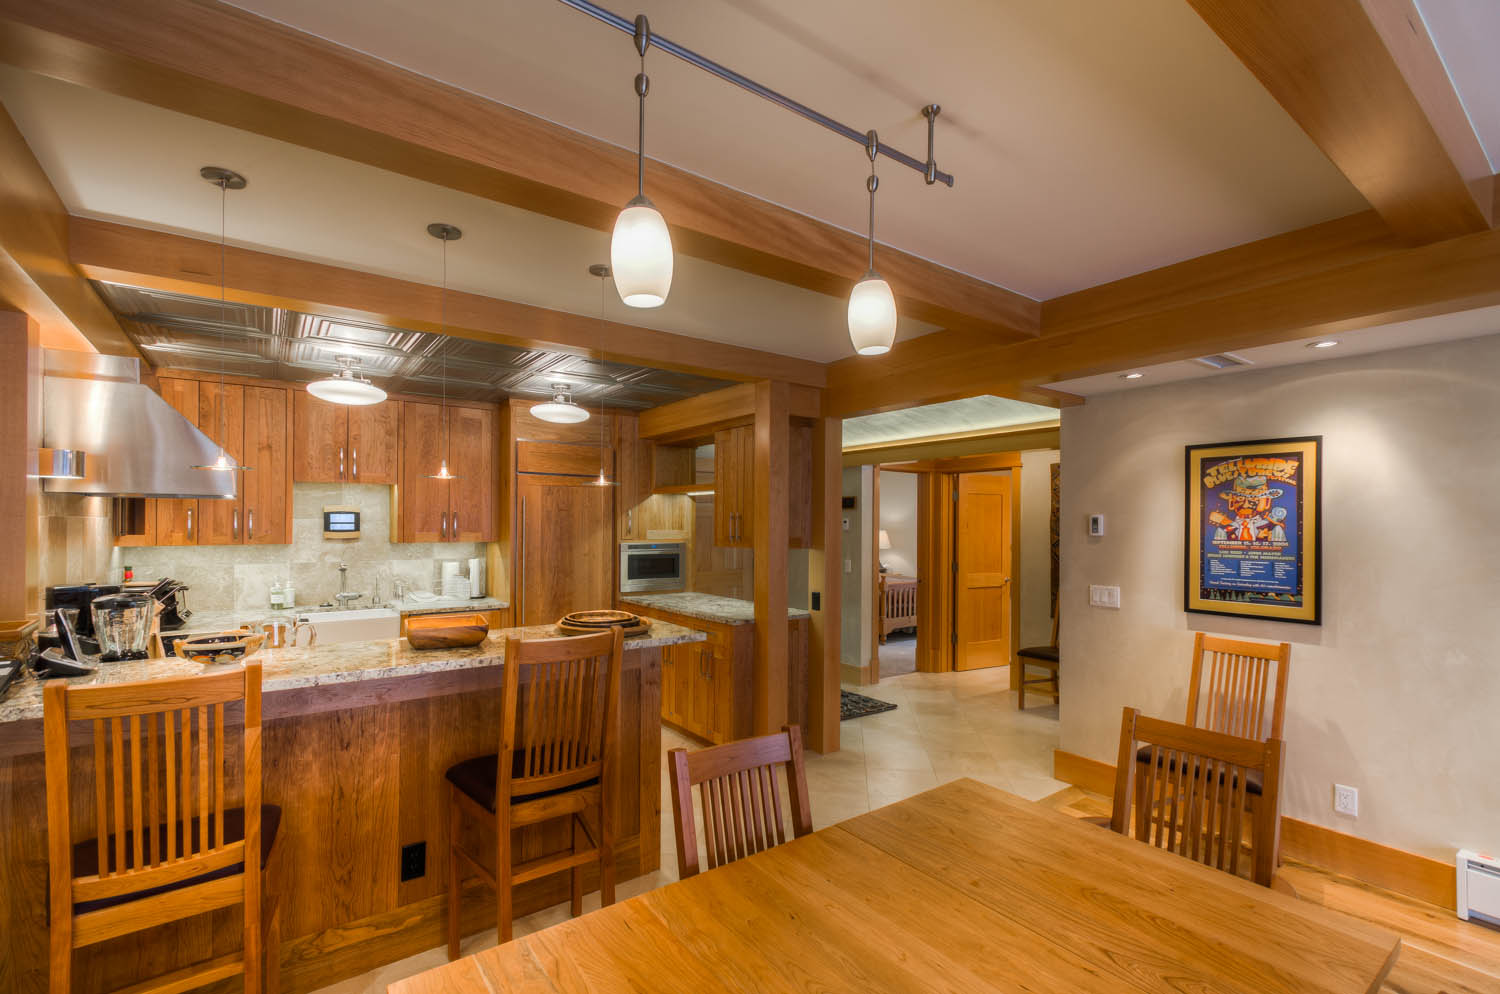 Dining to Bedroom hall